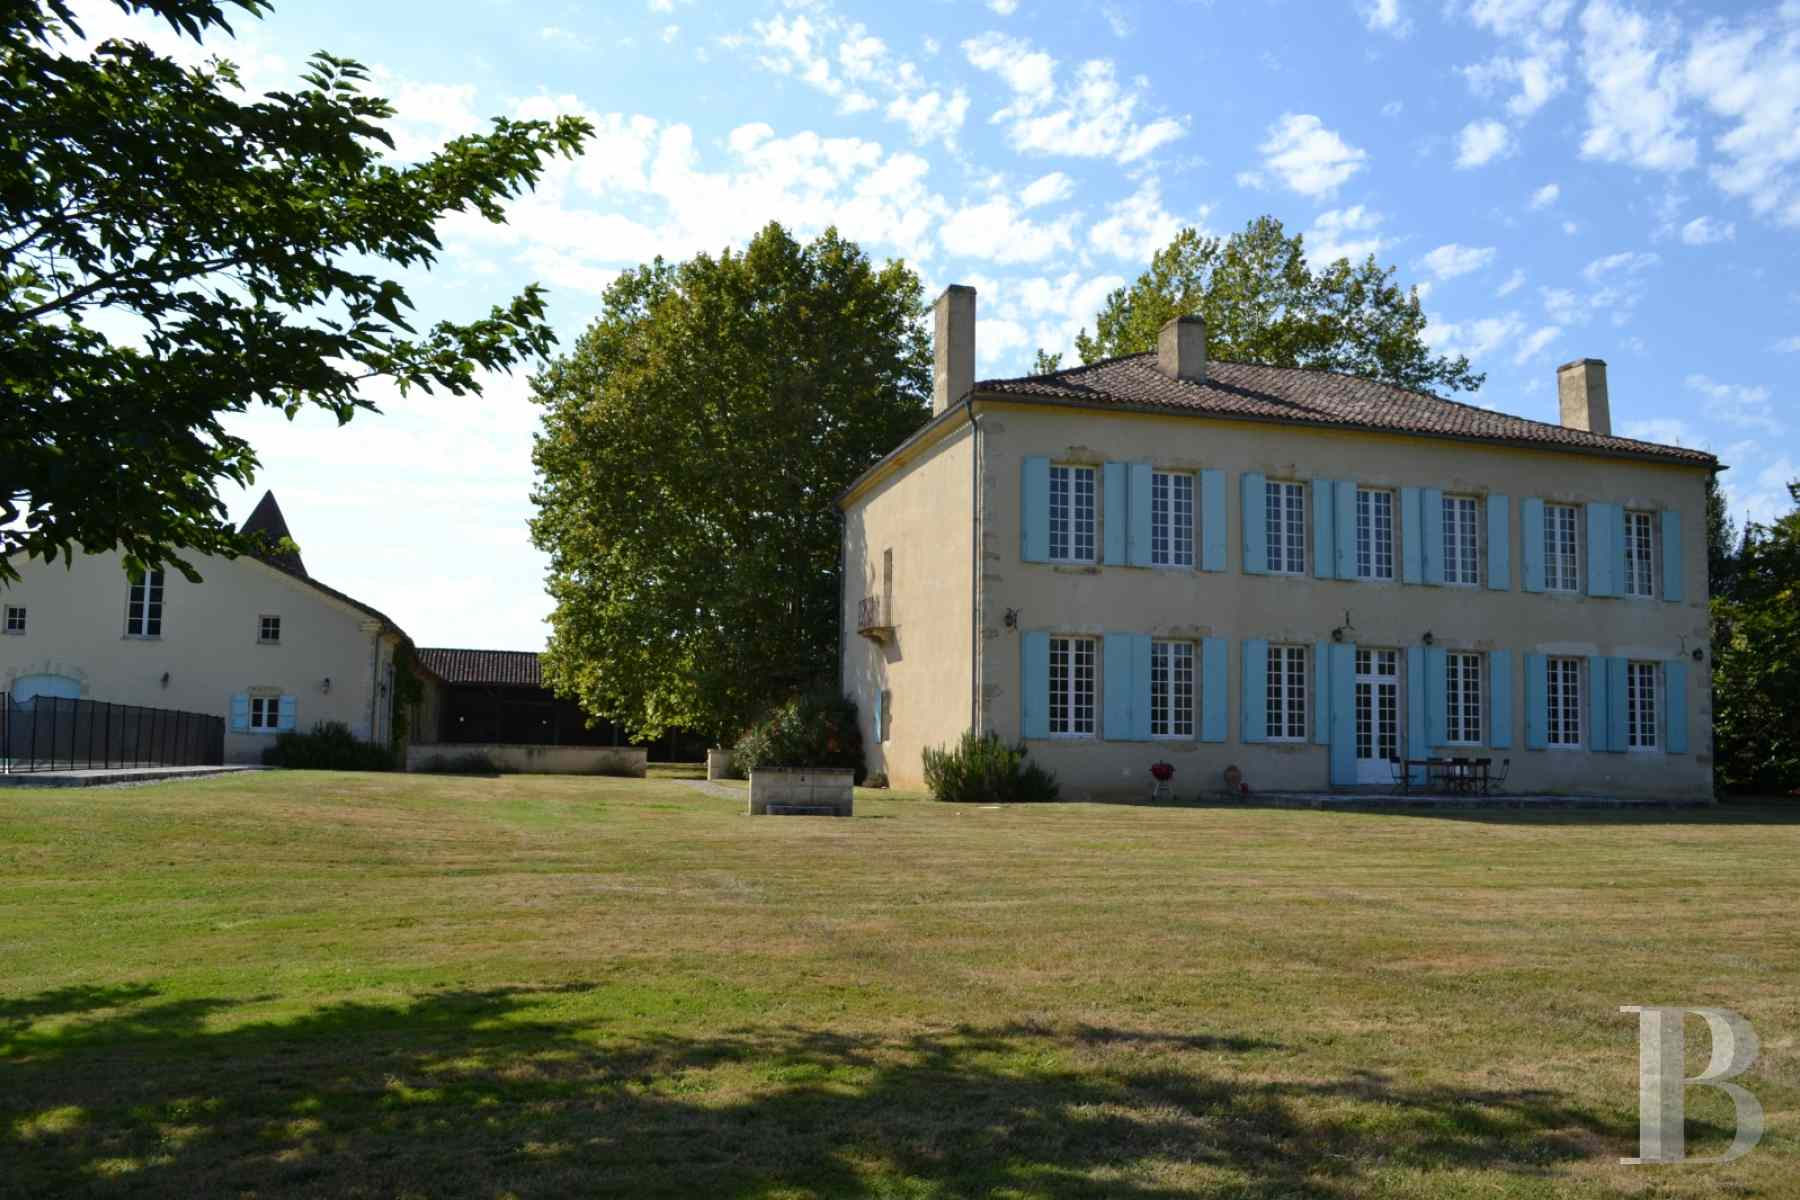 property for sale France aquitaine gascony armagnac - 2 zoom